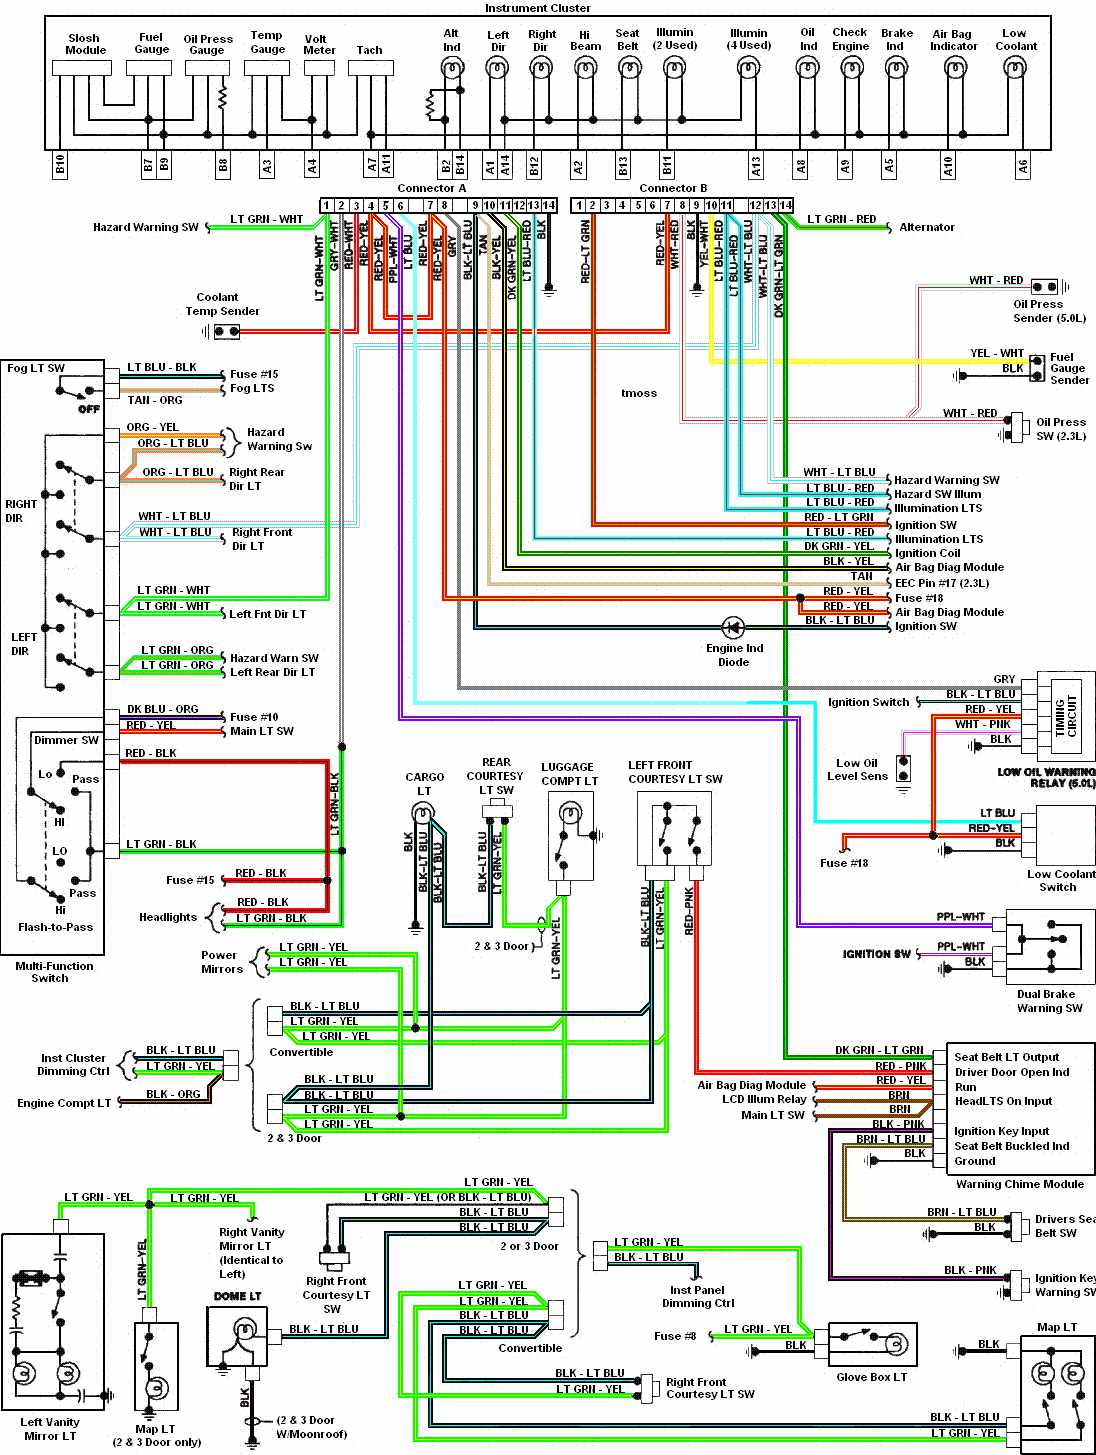 Instrument+Cluster+Wiring+Diagrams+Of+1987+Ford+Mustang+3rd+Generation 1970 mustang wiring diagram pdf 1967 mustang wiring diagram pdf 86 Mustang Wiring Diagram at panicattacktreatment.co